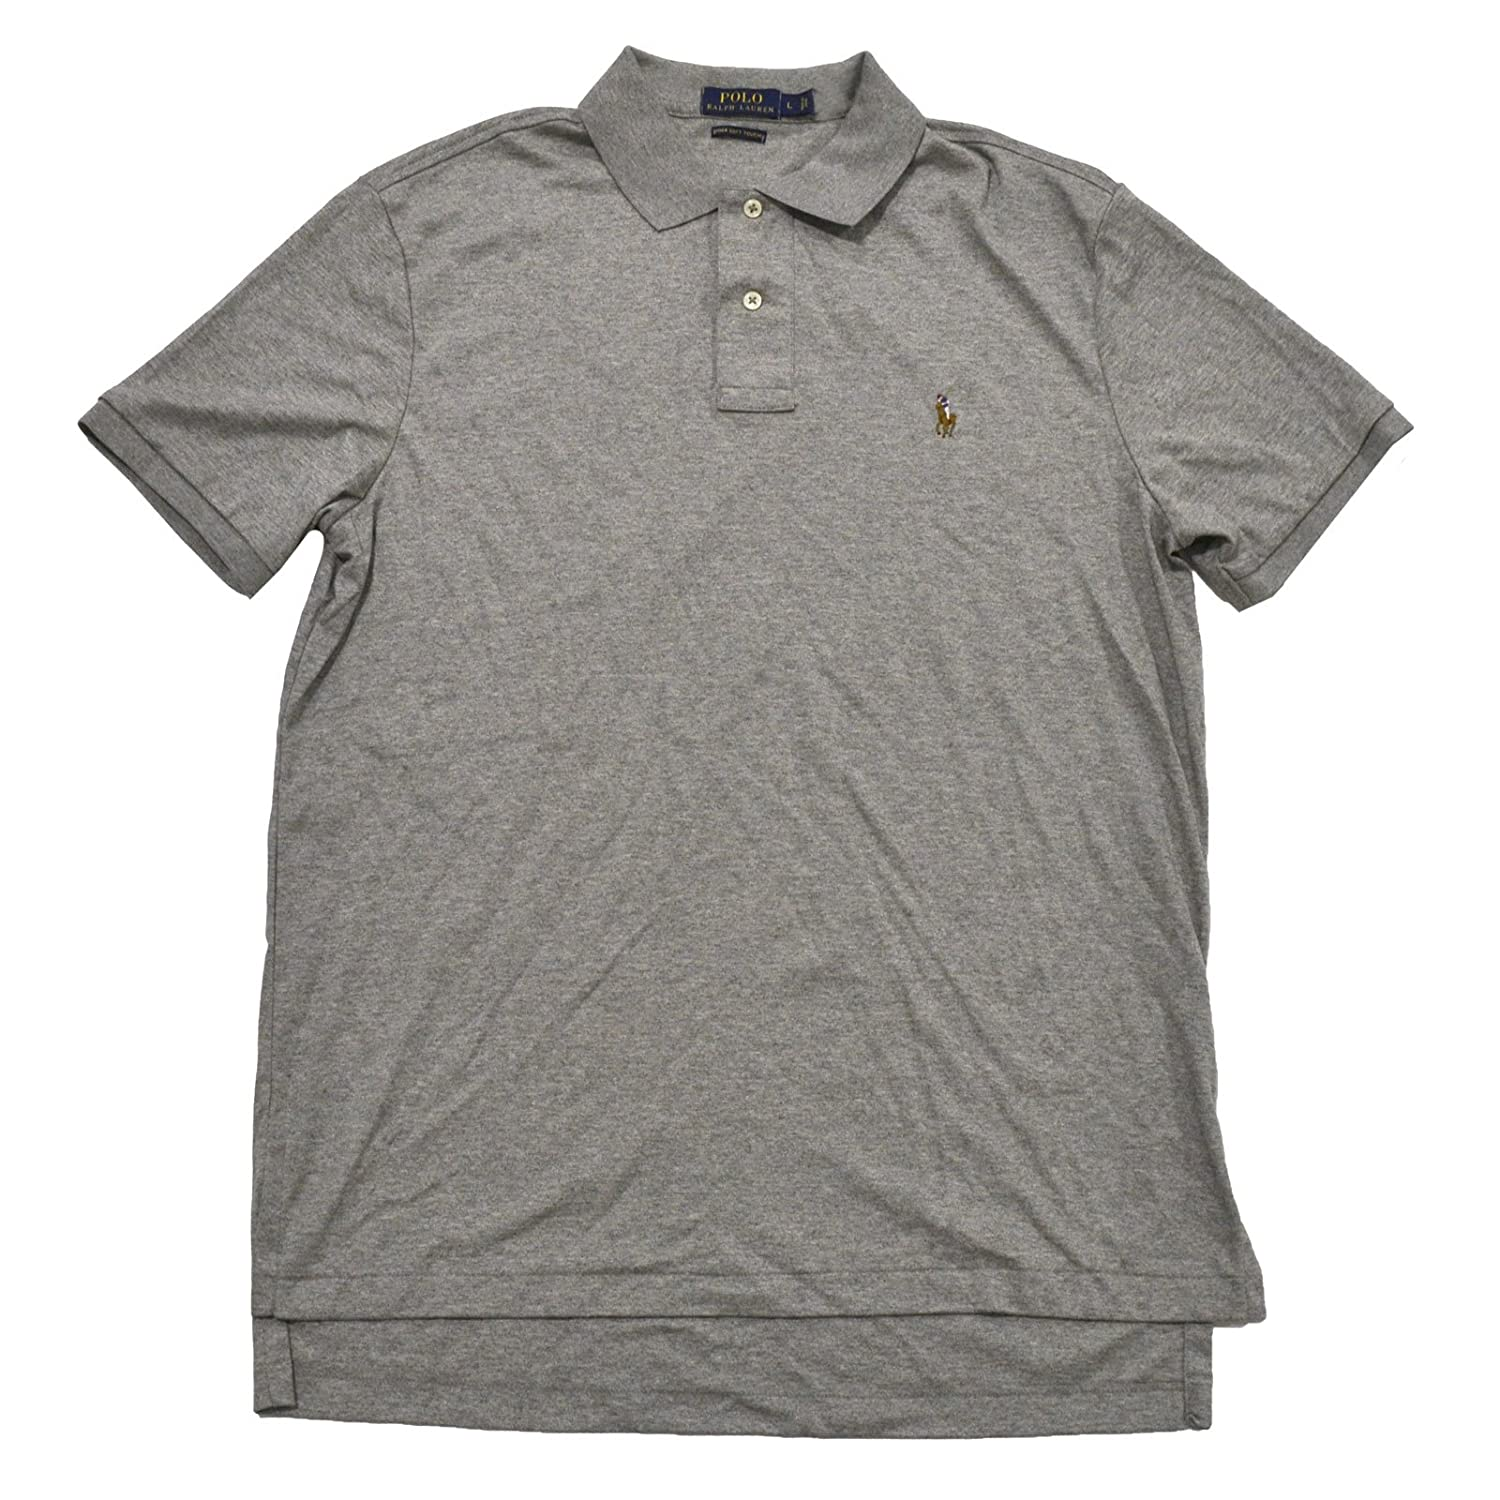 06725beb2f911 Polo Ralph Lauren Mens Cotton Heathered Polo Shirt at Amazon Men's Clothing  store: